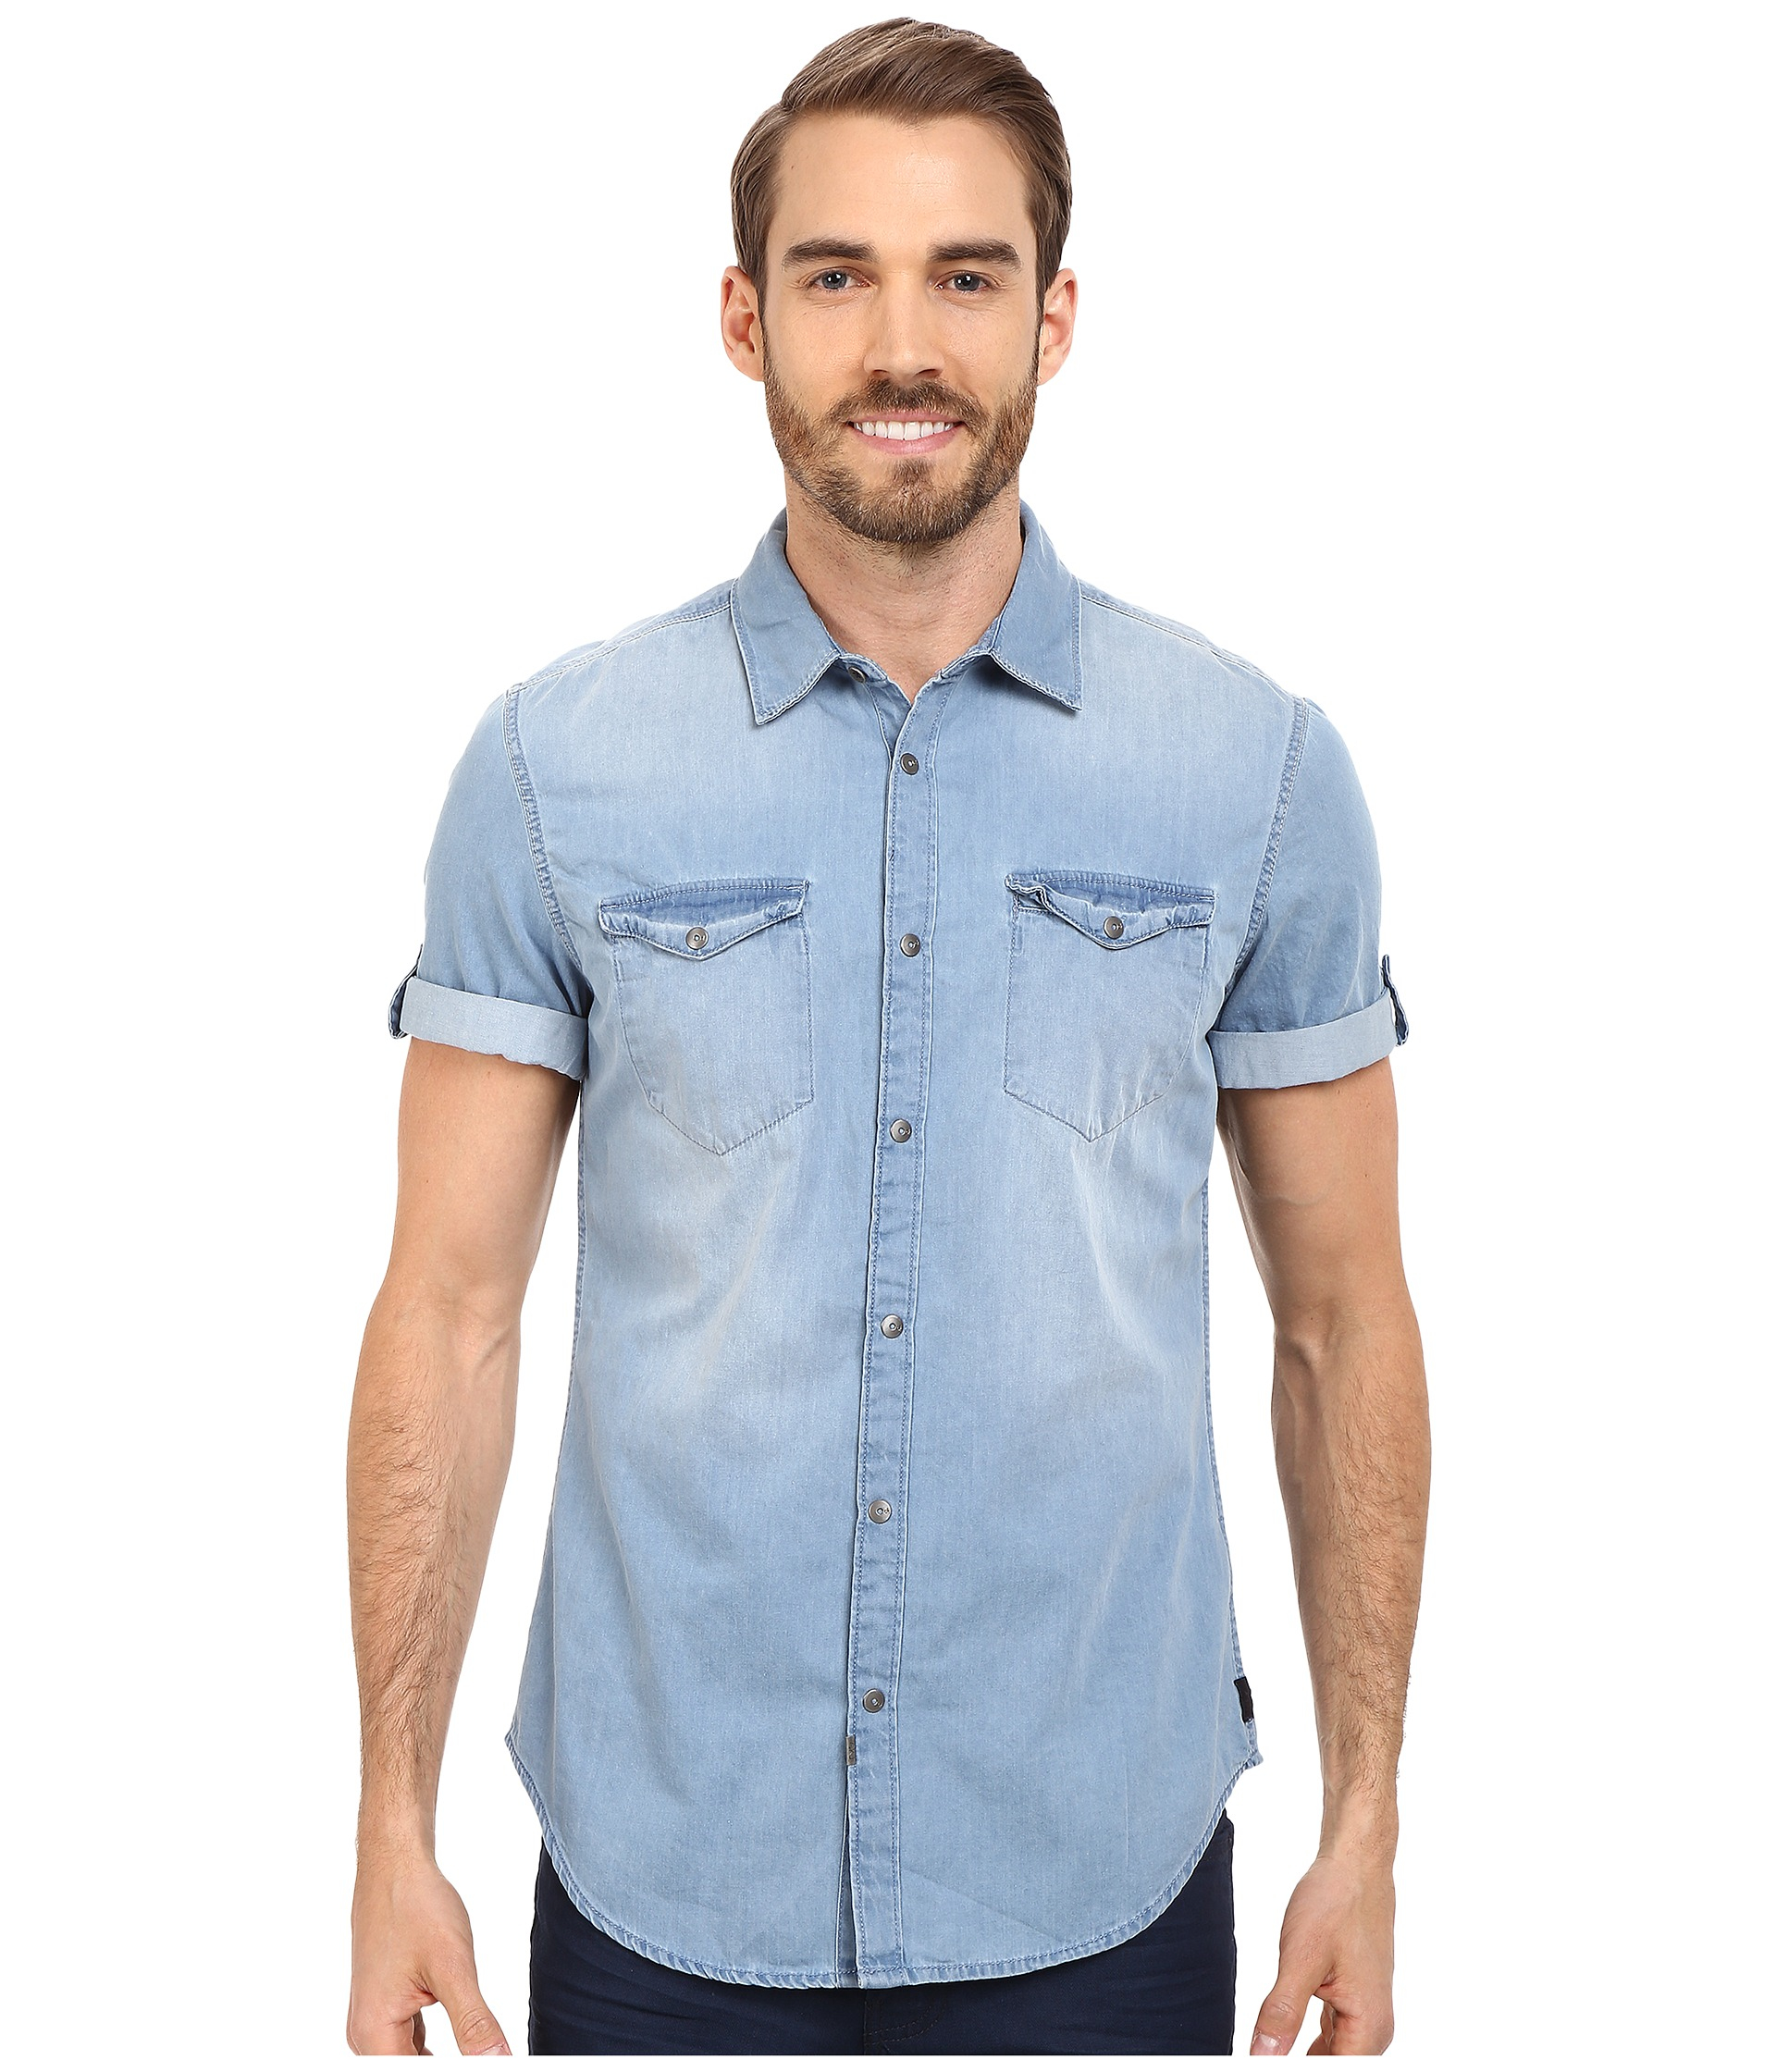 short sleeve denim shirt for men custom shirt